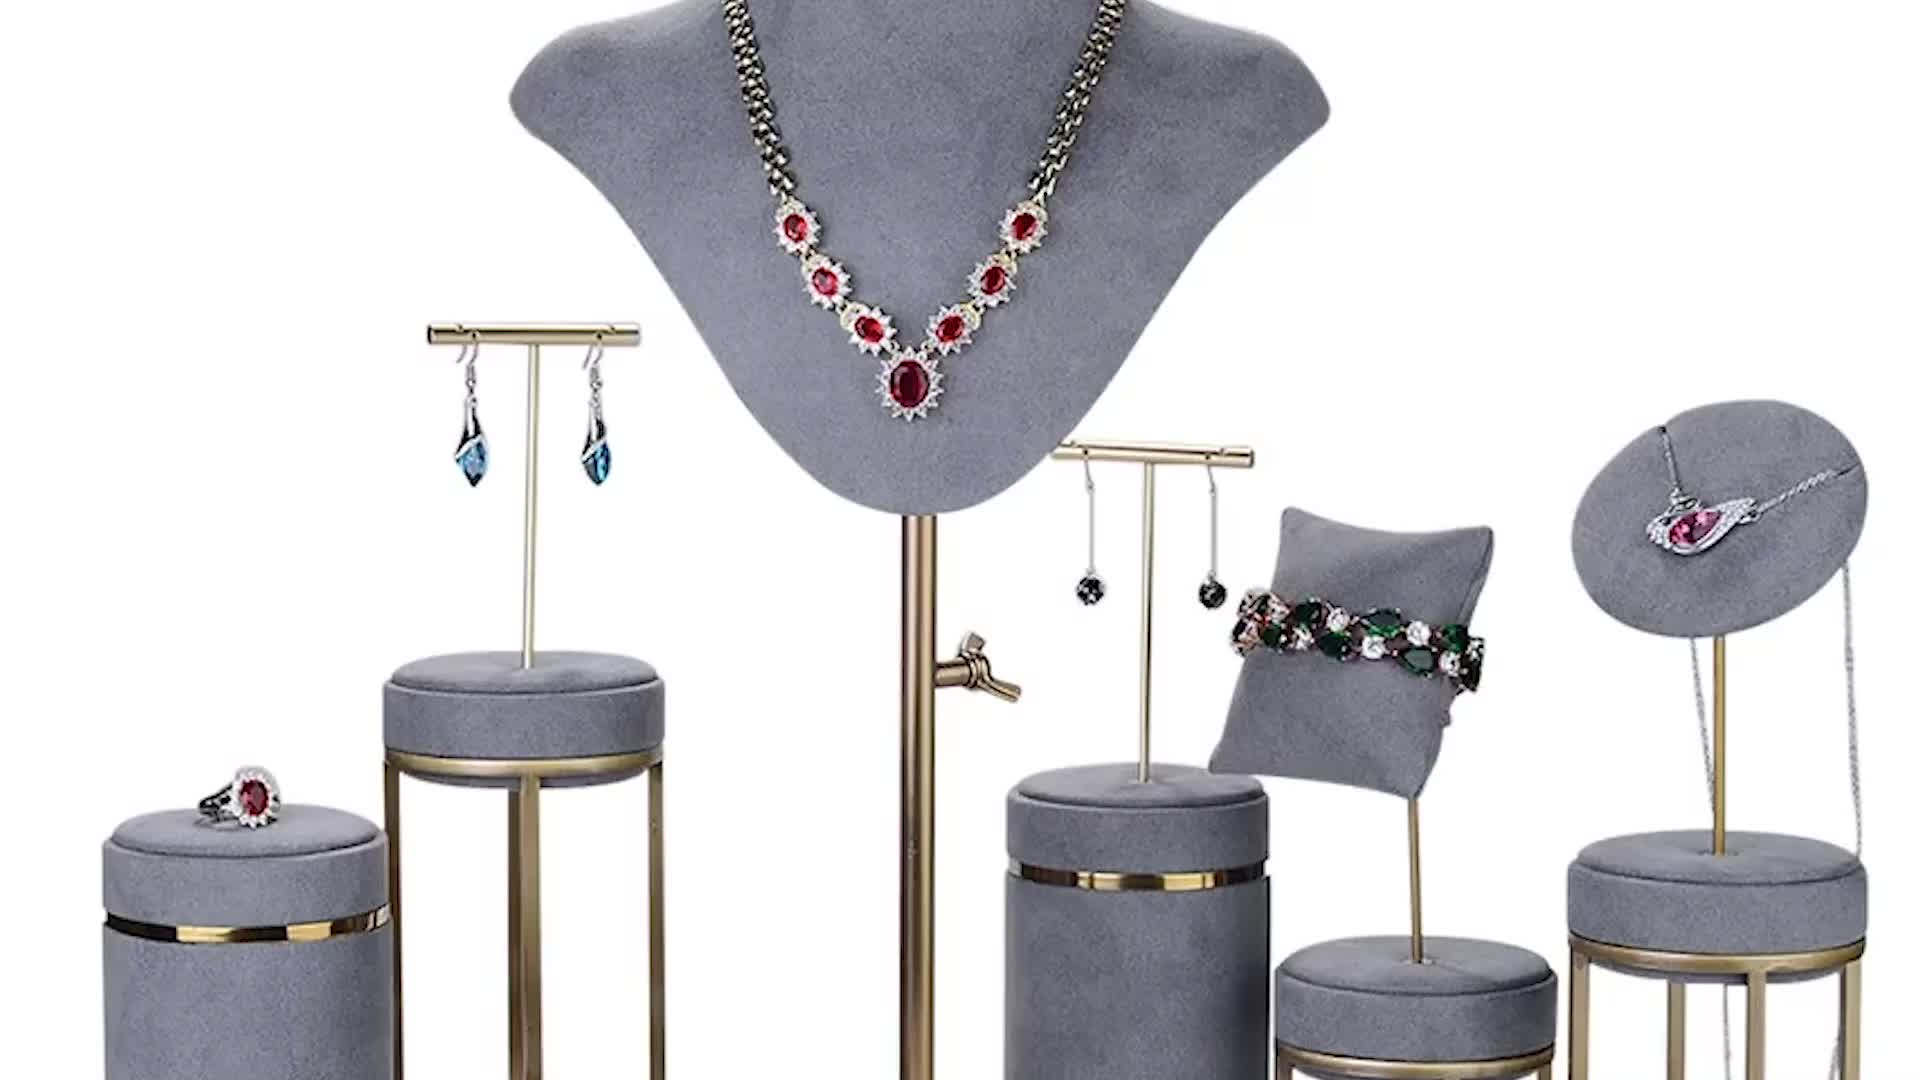 Luxury Customized Brown Microfiber Ring Chain Display Holder Jewelry Display Stand Sets For Store